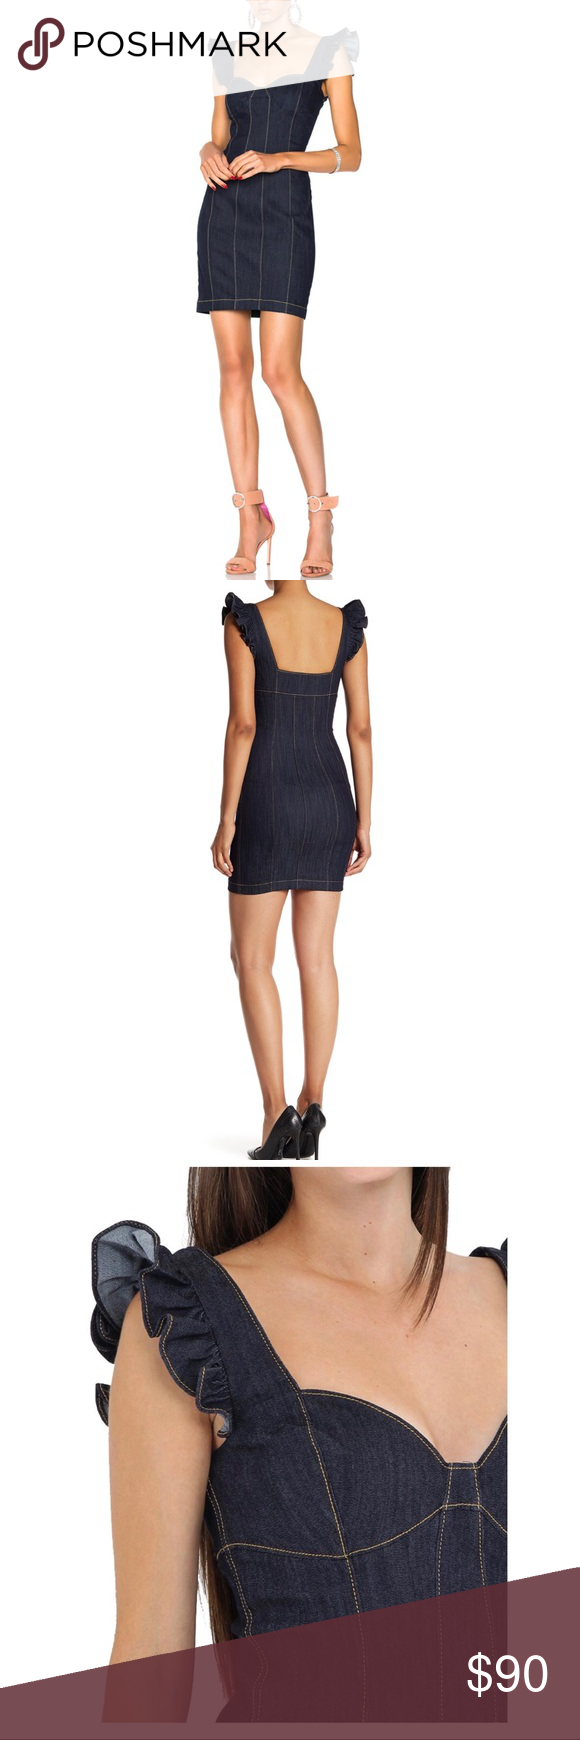 a2d734f3d6 Cinq a Sept Mathis Dress in Indigo This inky Cinq a Sept denim dress is  detailed with subtle ruffles and contrast stitching. The sweetheart  neckline adds an ...